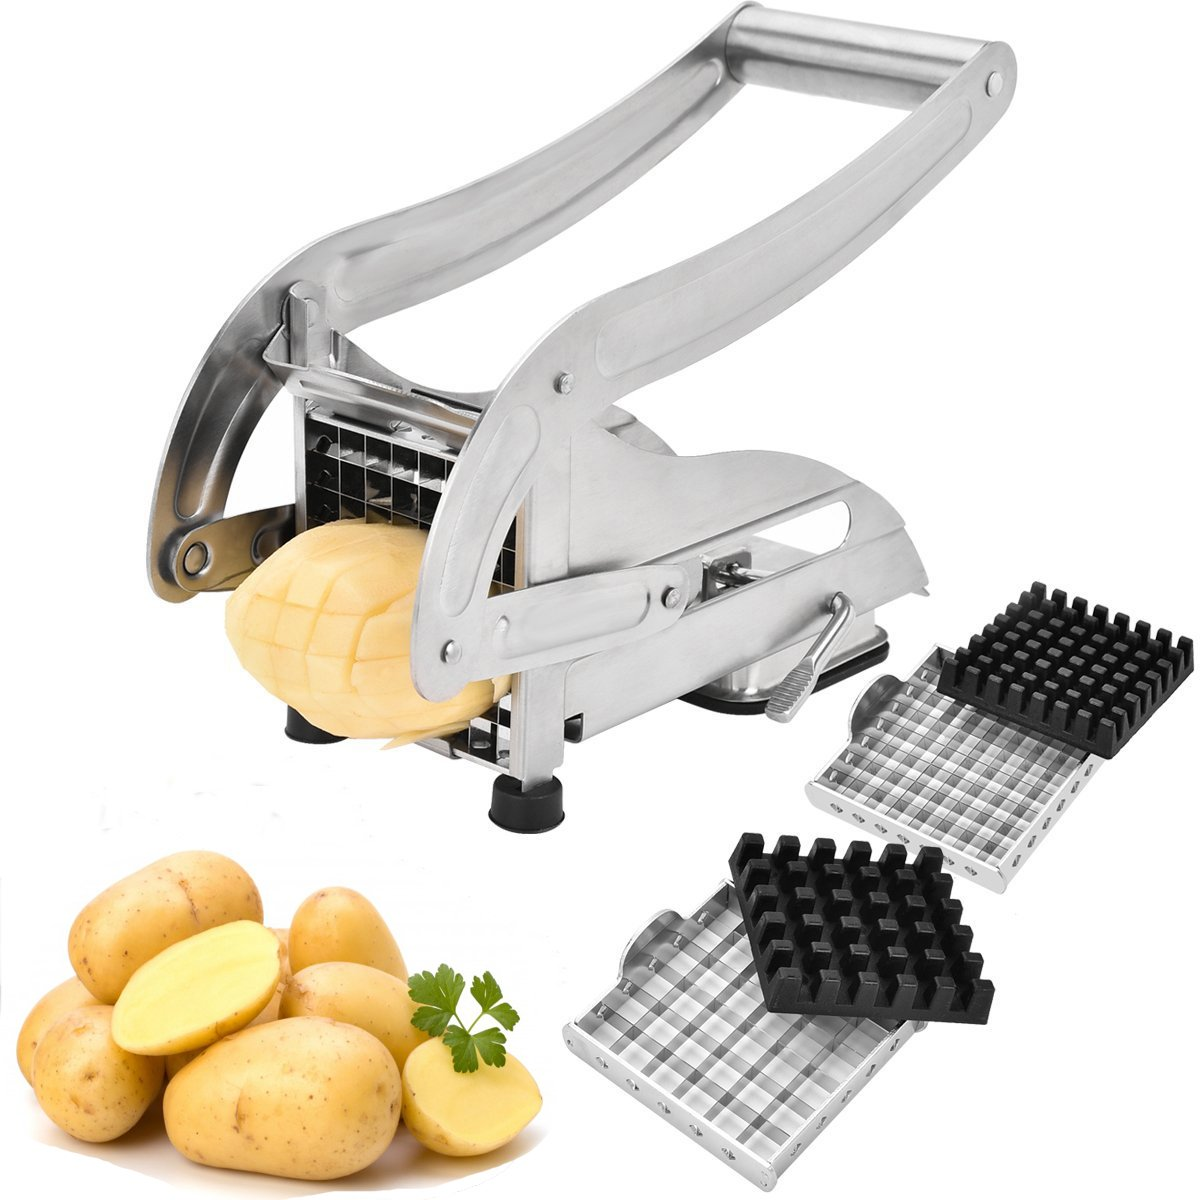 French Fry Cutter, Stainless Steel Potato Slicer Vegetables Fruit Chopper and Dicer with 2 Size Interchangeable Blades and Strong-Hold Suction Pads for Potatoes, Veggie Sticks